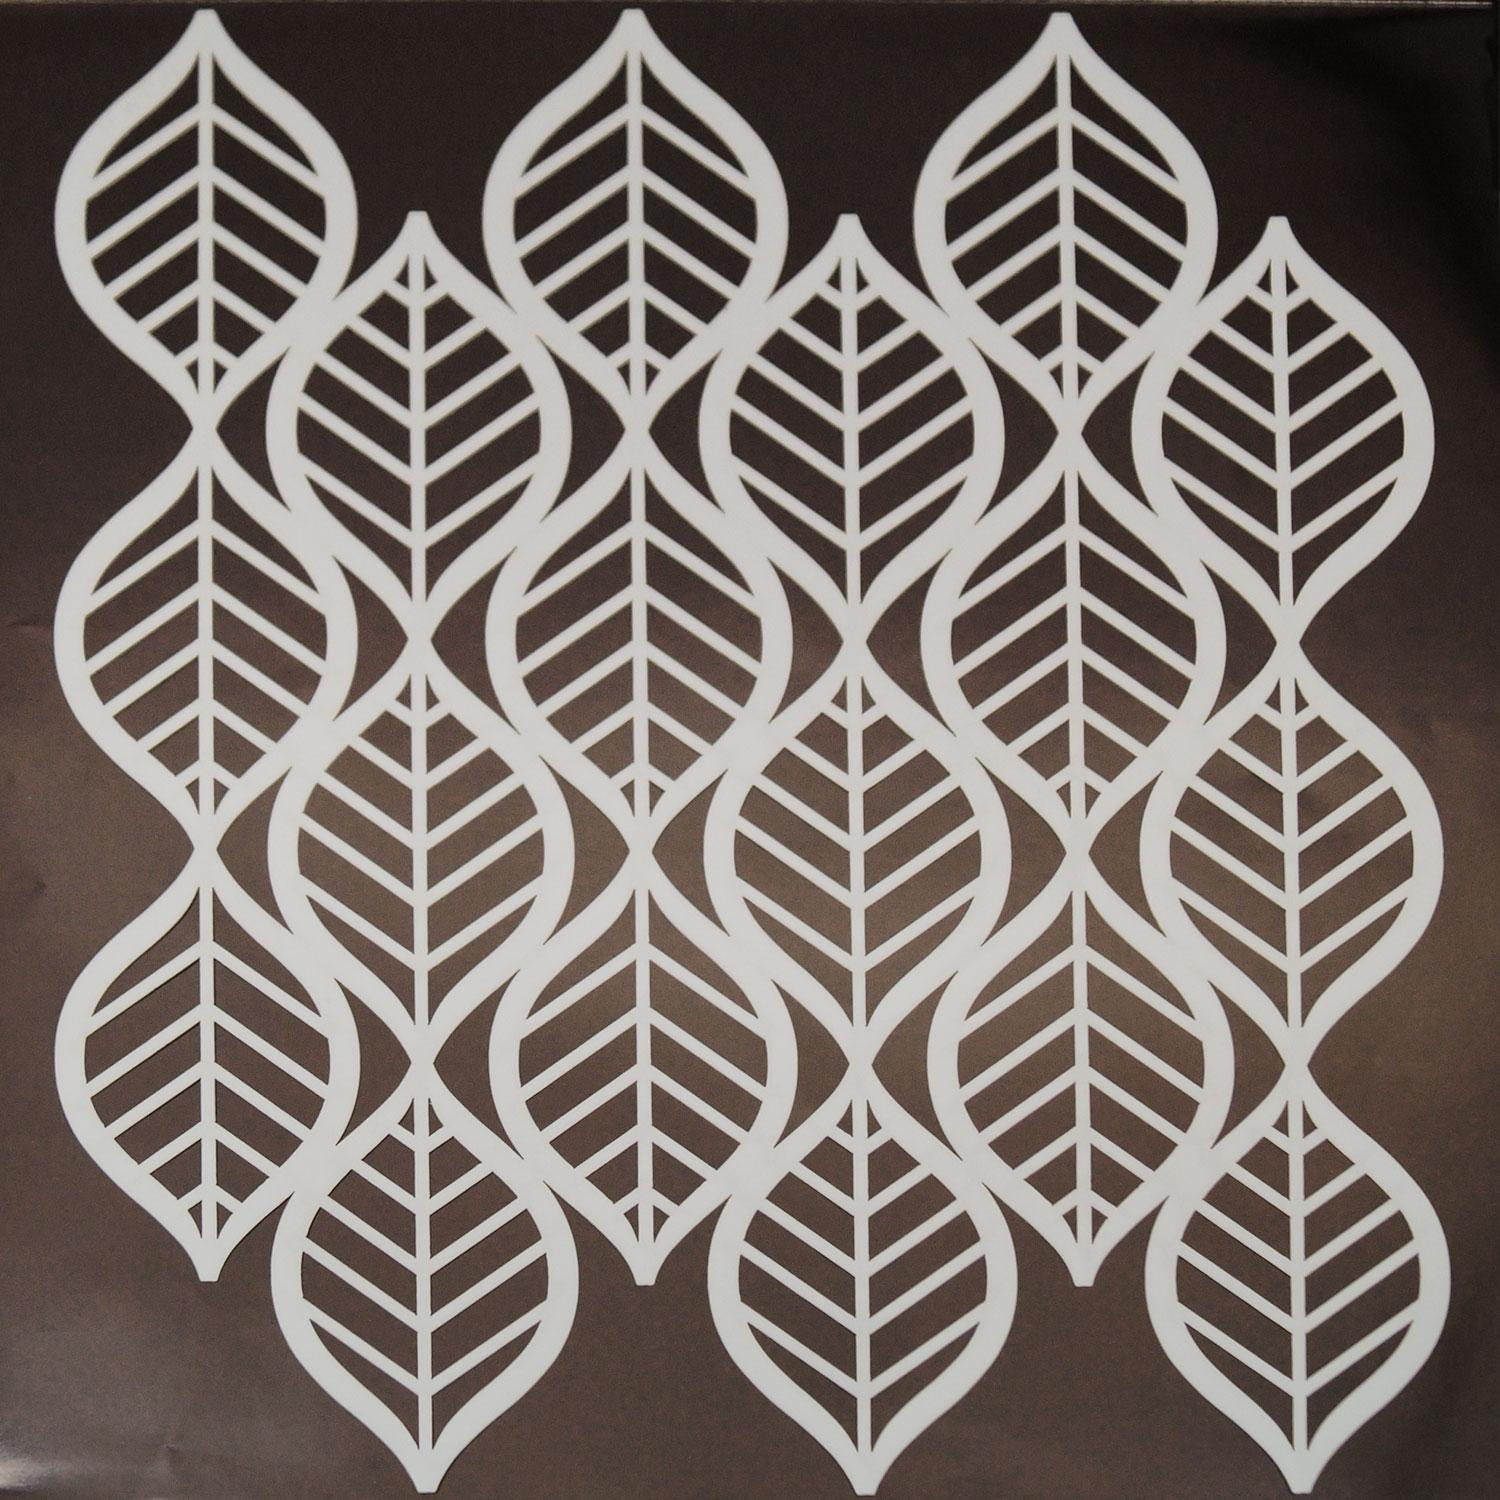 Art deco leaves pattern stencil glass delphi glass for Art deco patterns